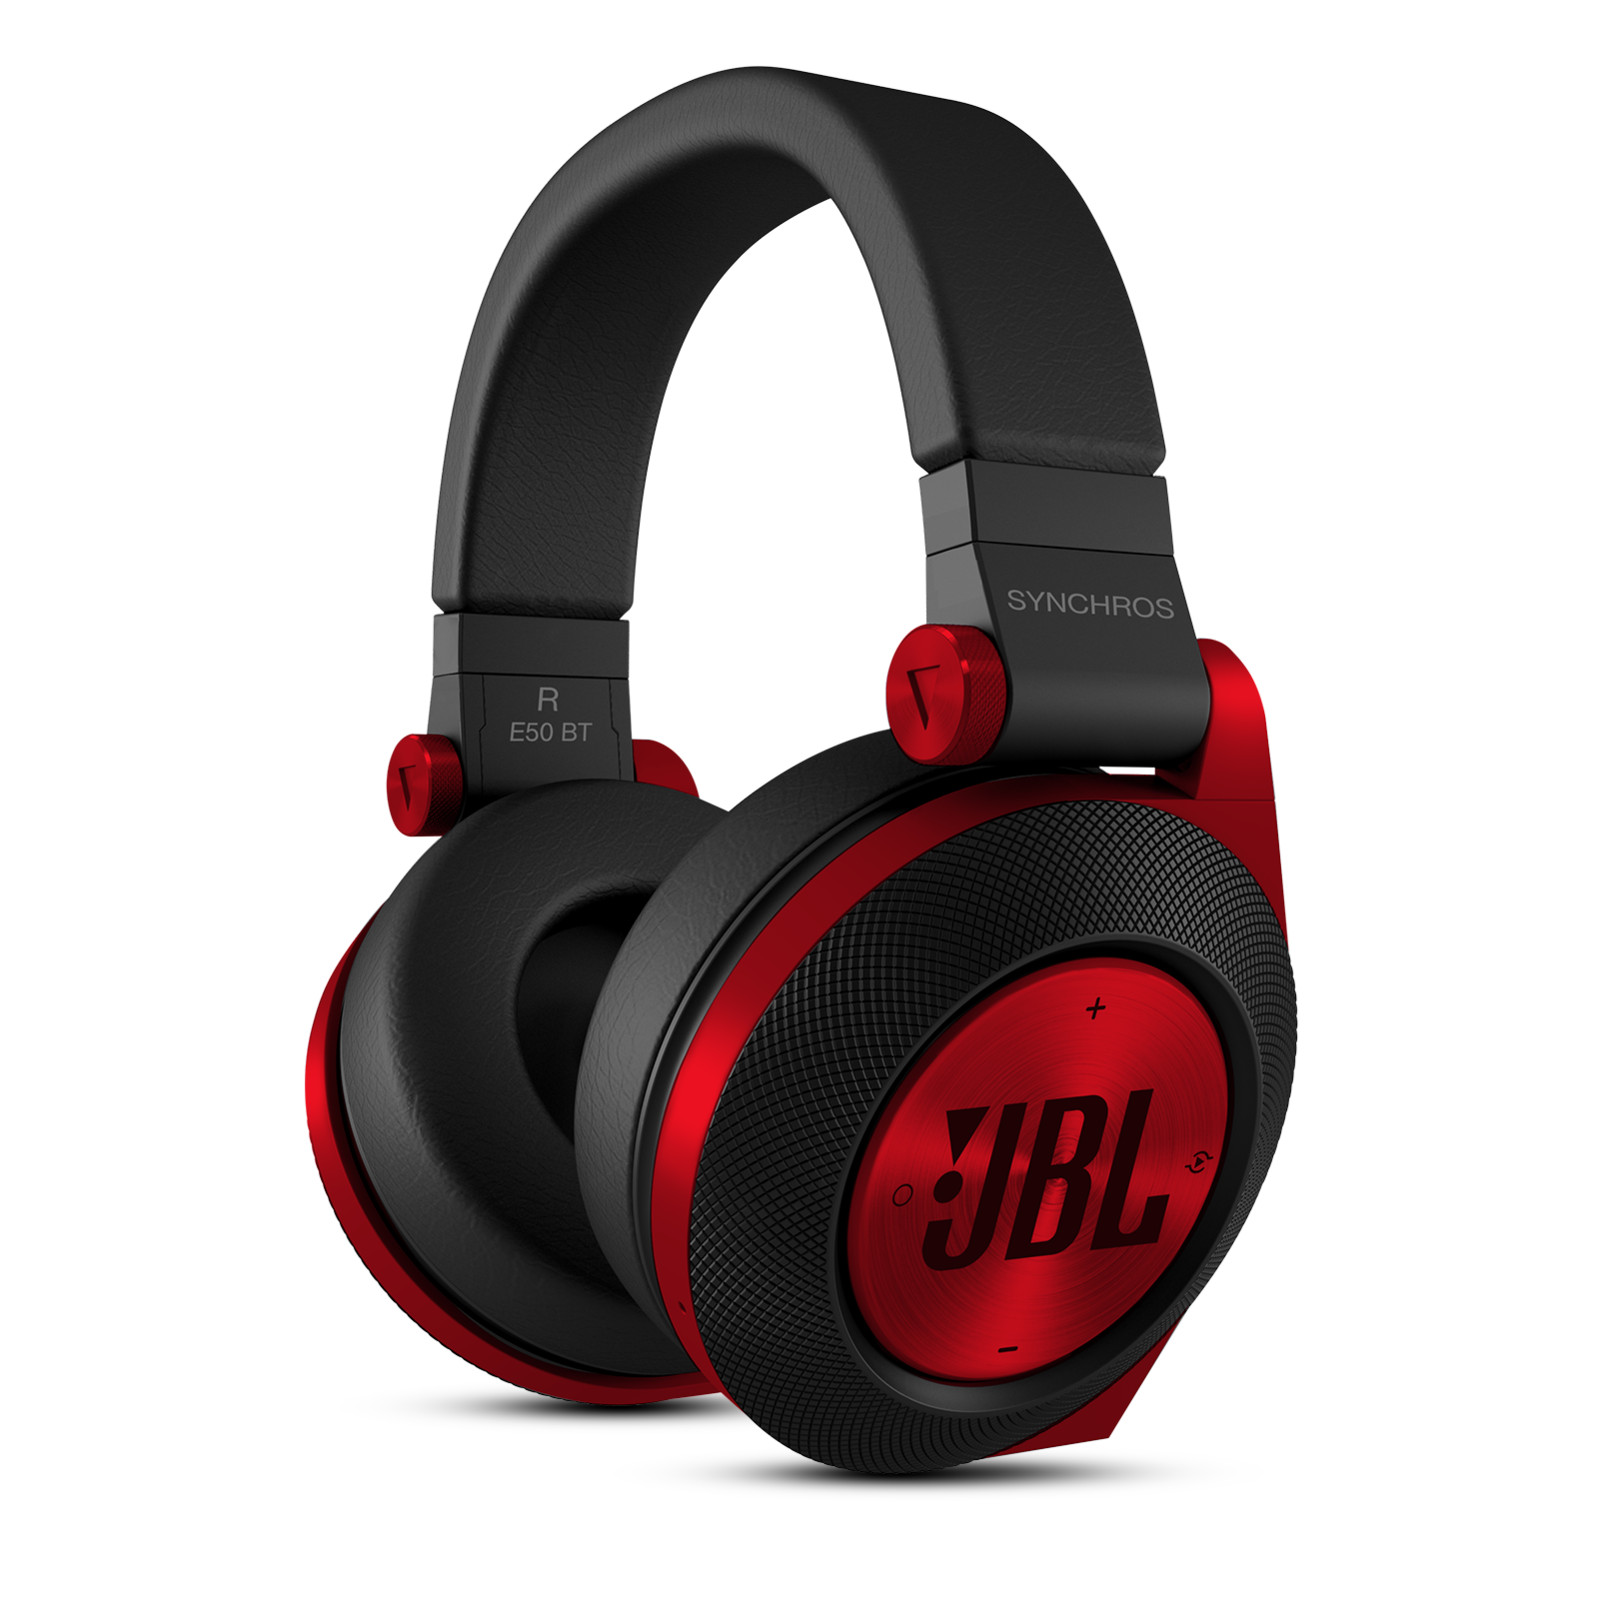 JBL E50 BT Red Over Ear Bluetooth Headphones Walmart